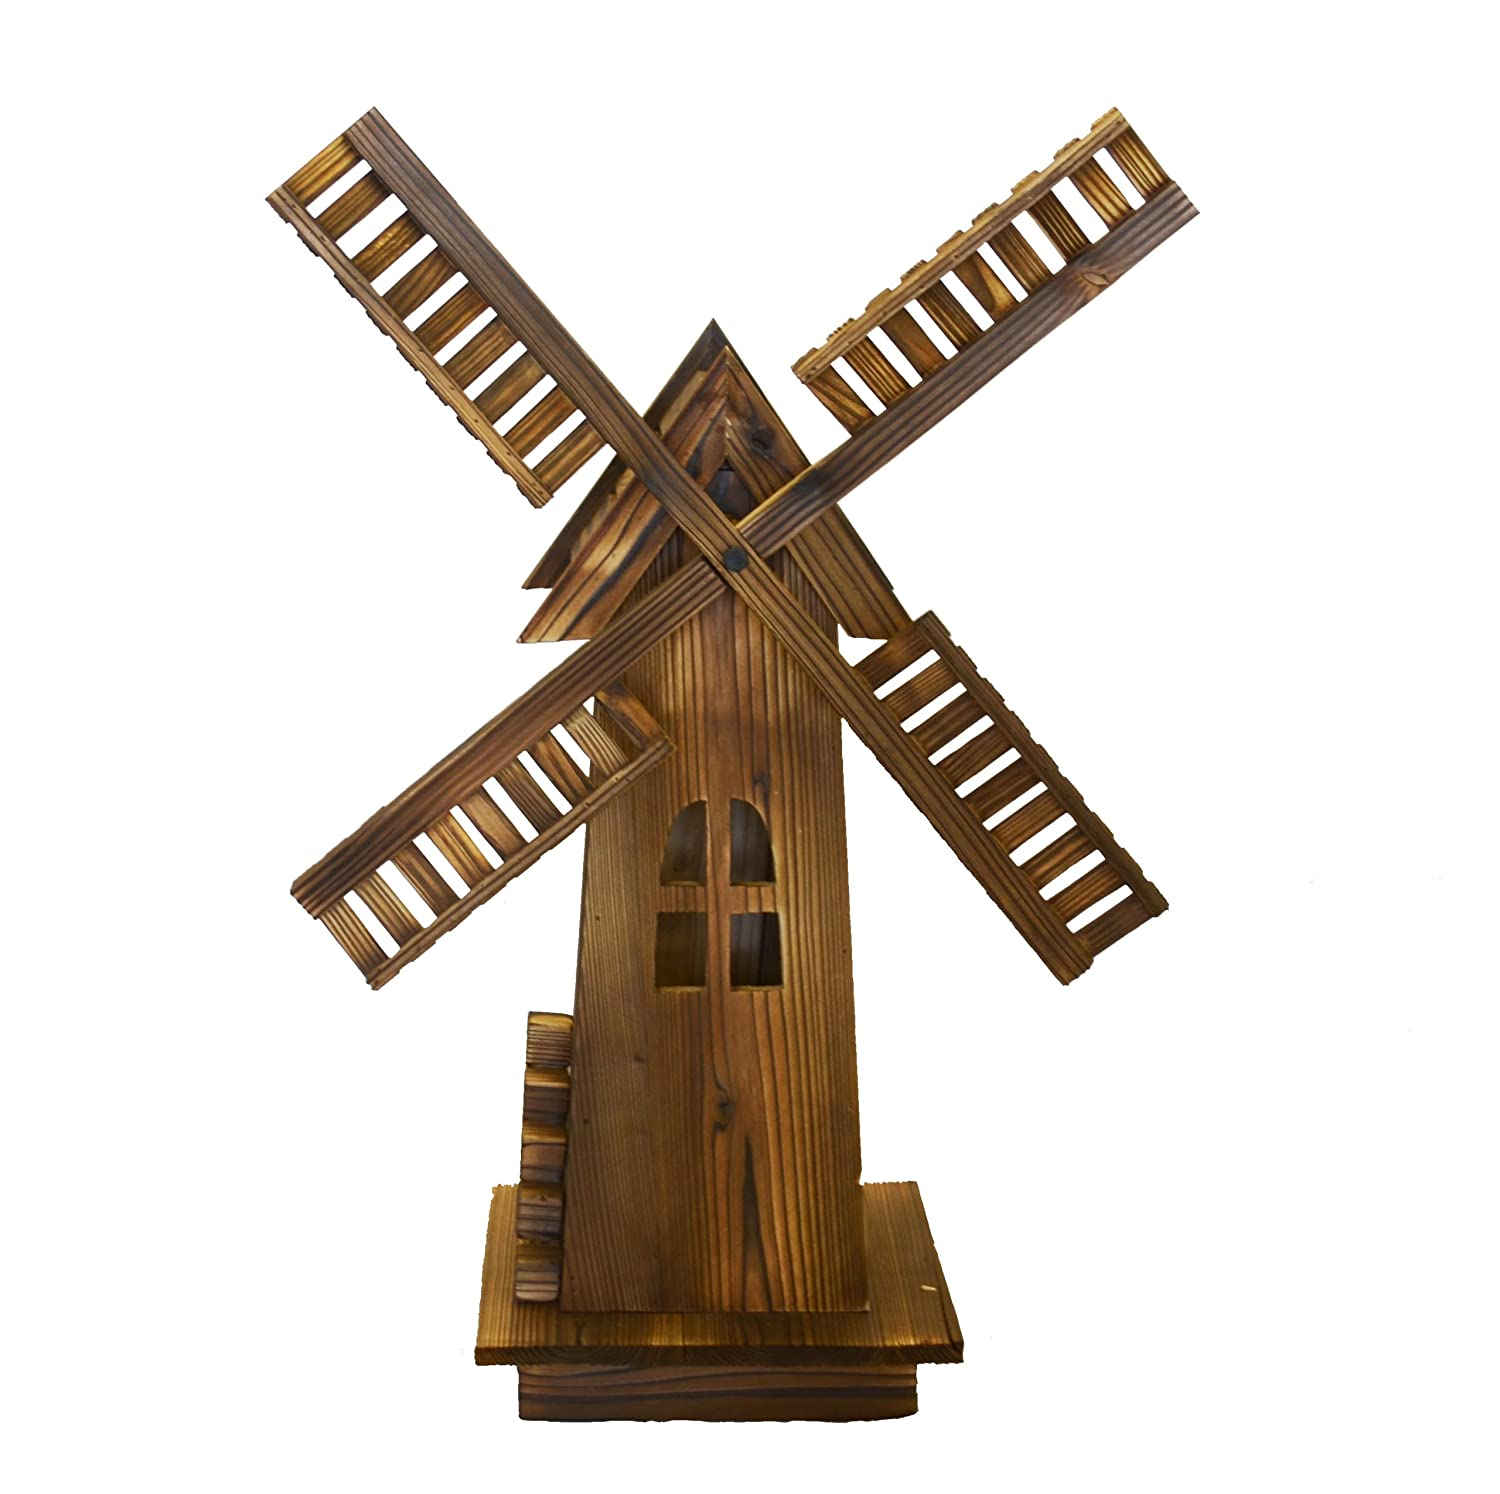 Amazing Amazon.com : Wooden Dutch Windmill   Classic Old Fashioned Windmill For  Garden, Patio Product SKU: PL50015 : Garden U0026 Outdoor